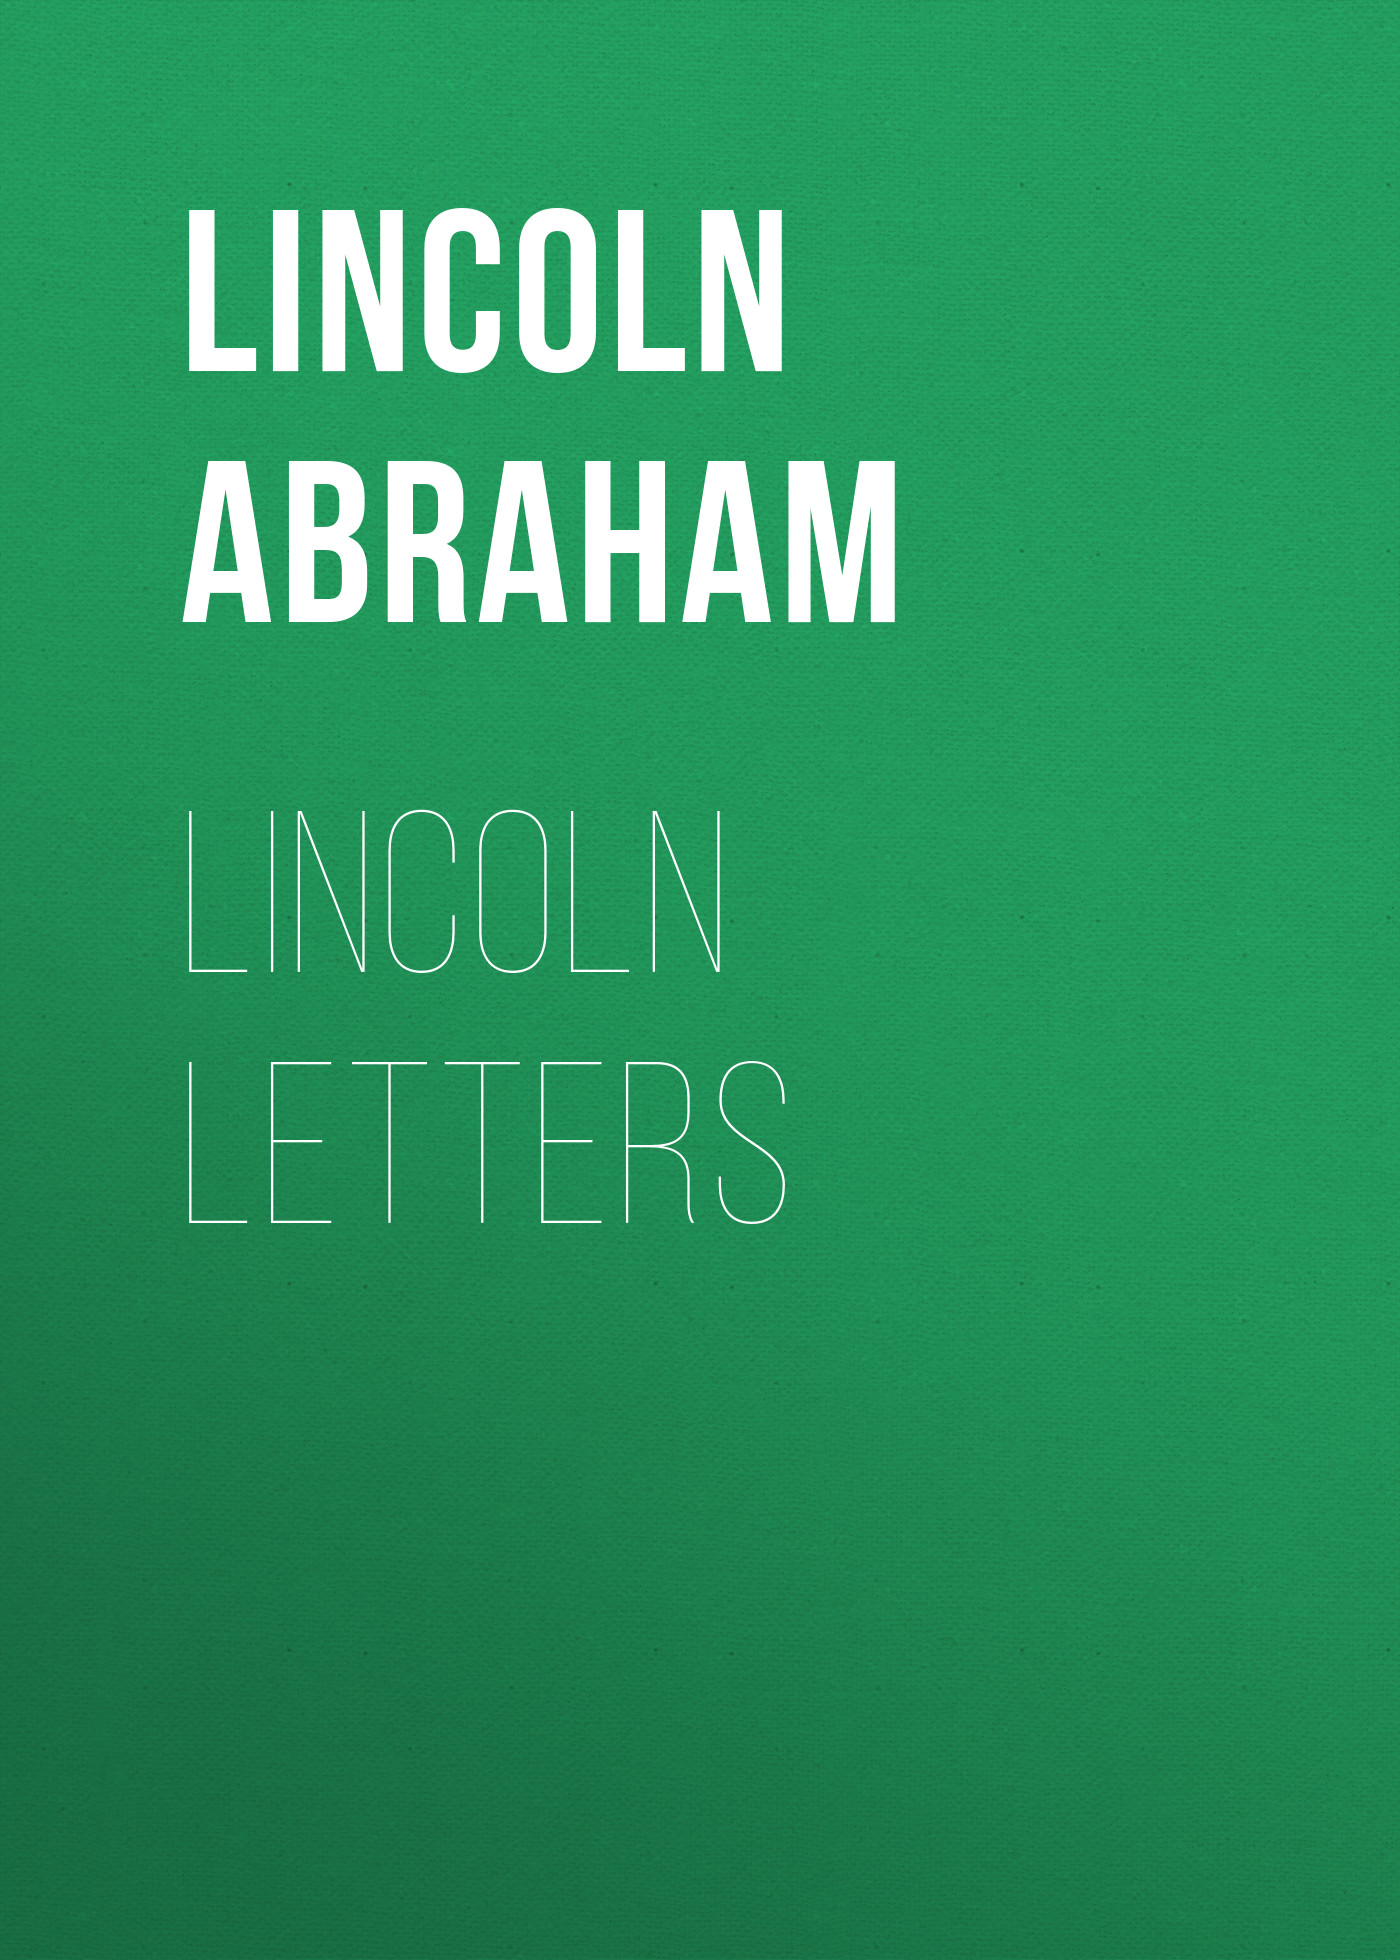 Lincoln Abraham Lincoln Letters grahame smith s abraham lincoln vampire hunter